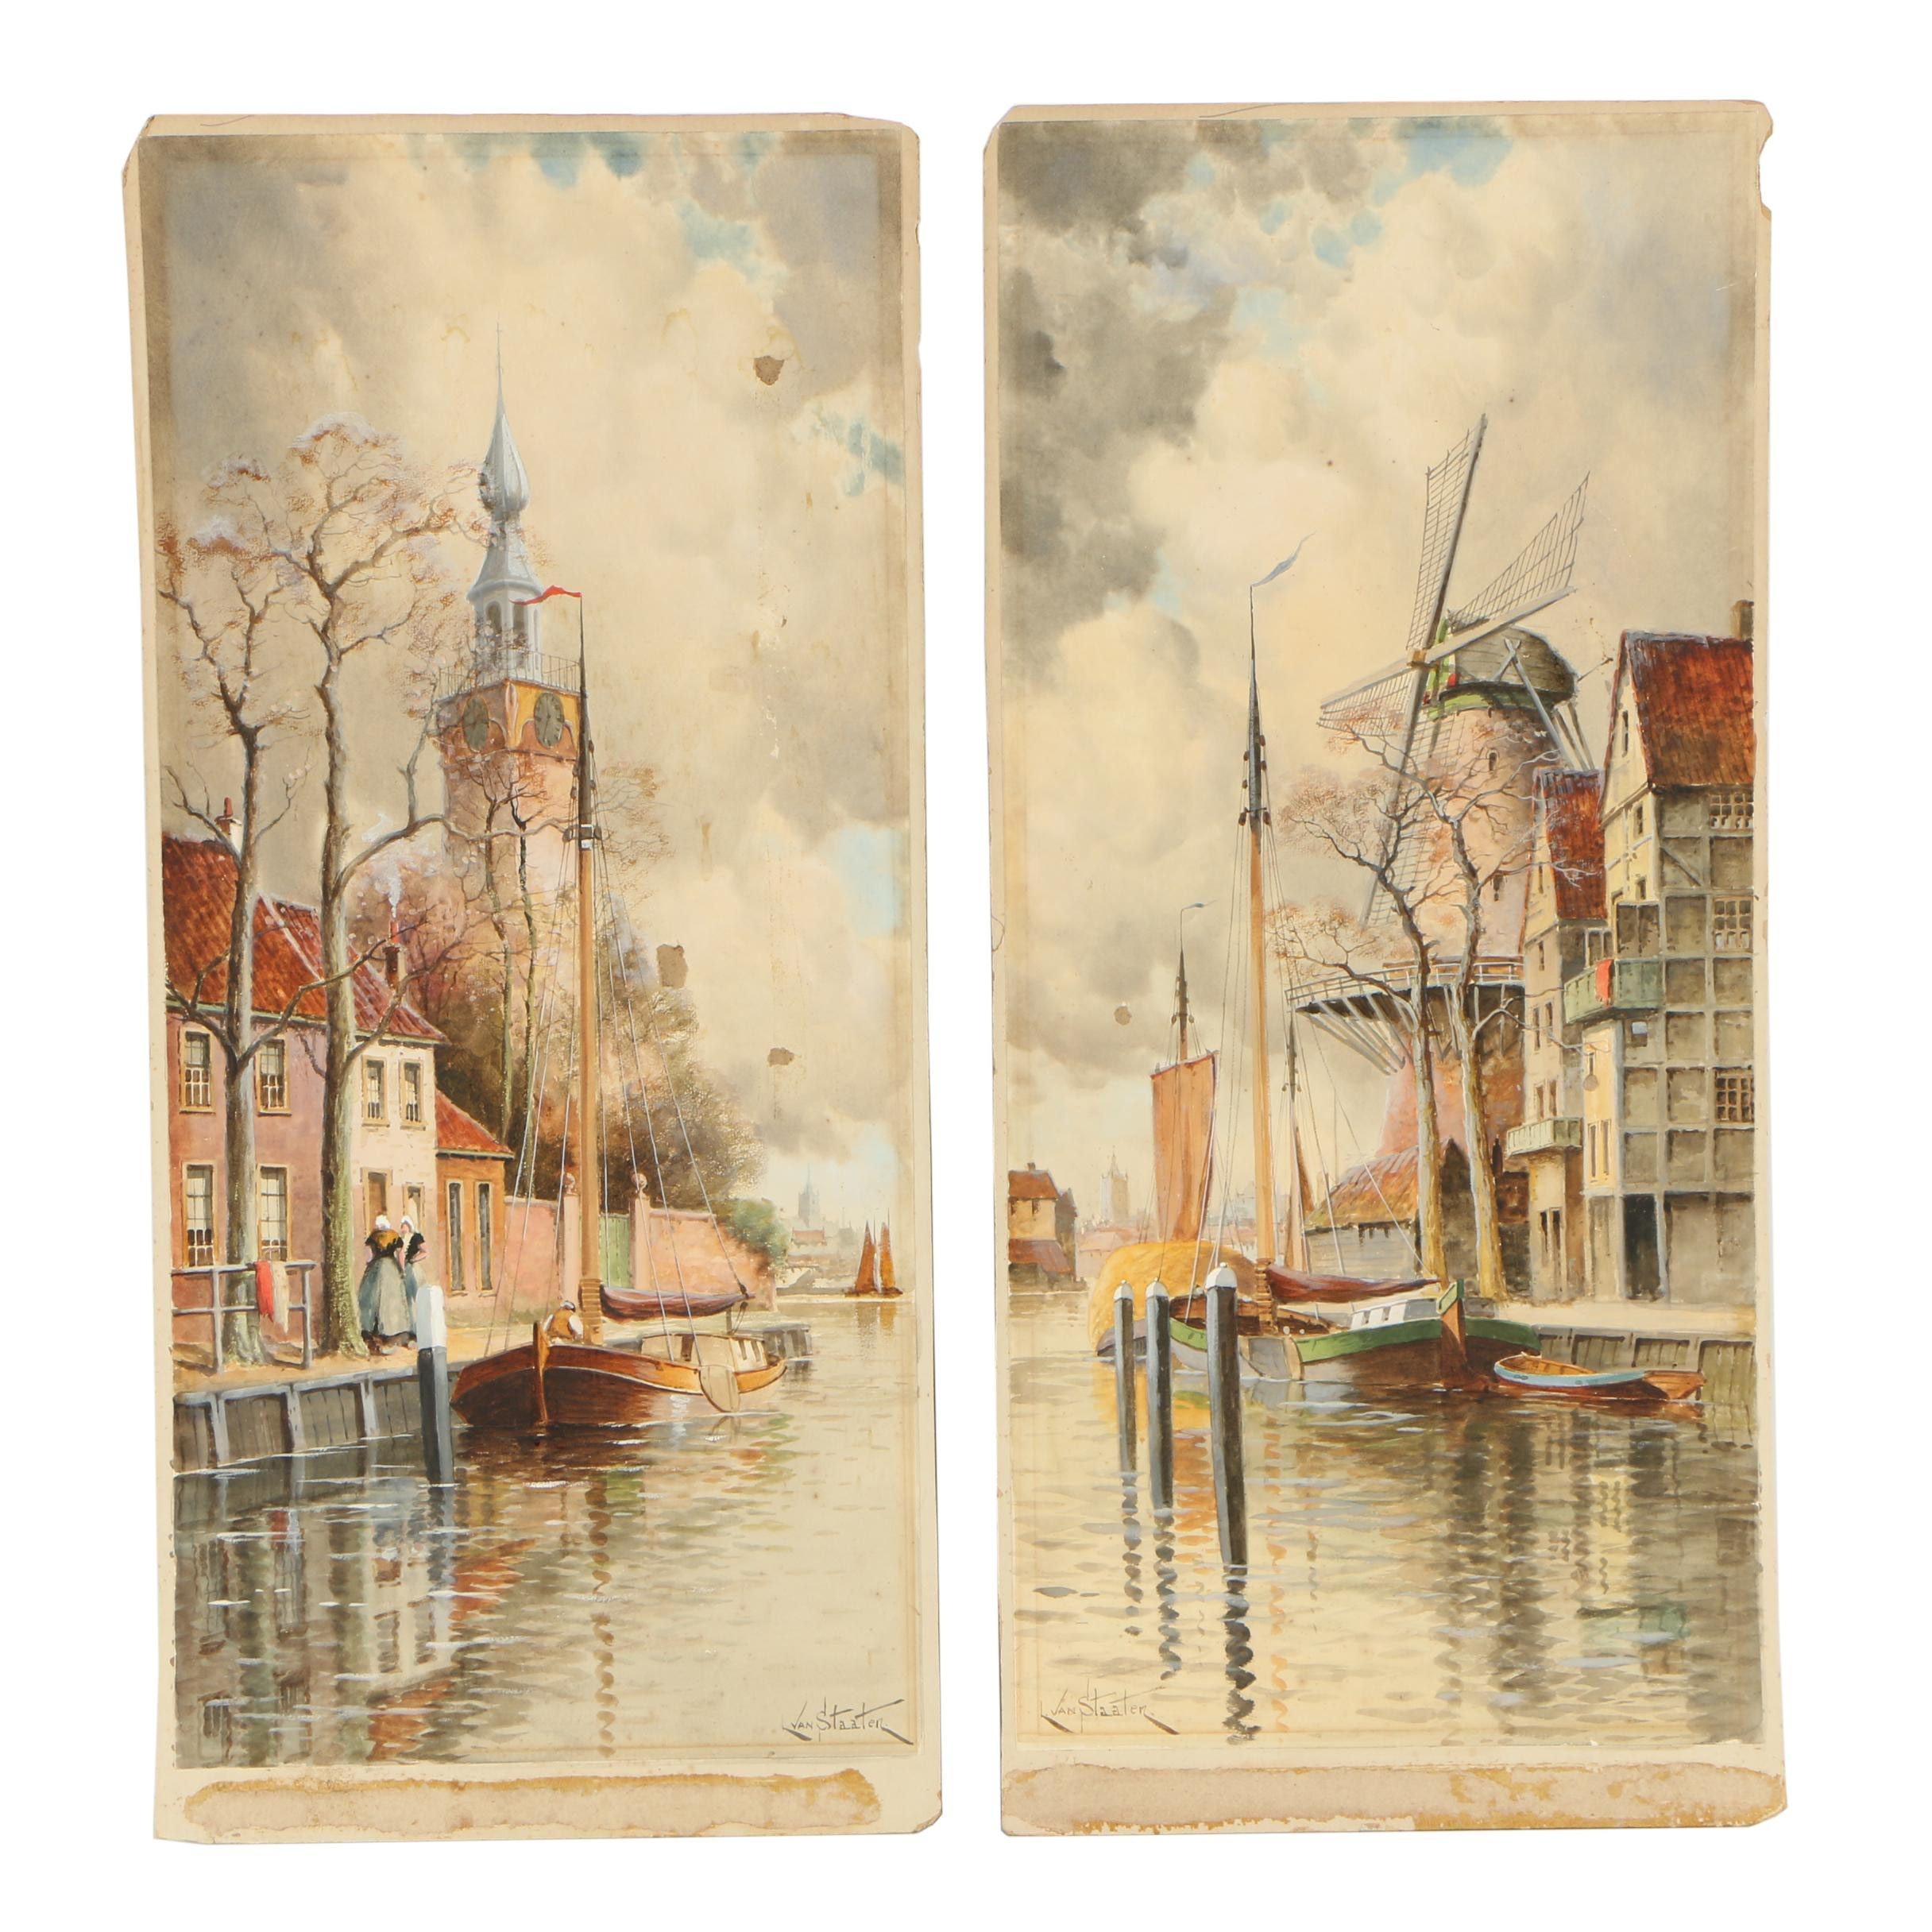 Louis Van Staaten Watercolor and Gouache Paintings of Coastal Scenes